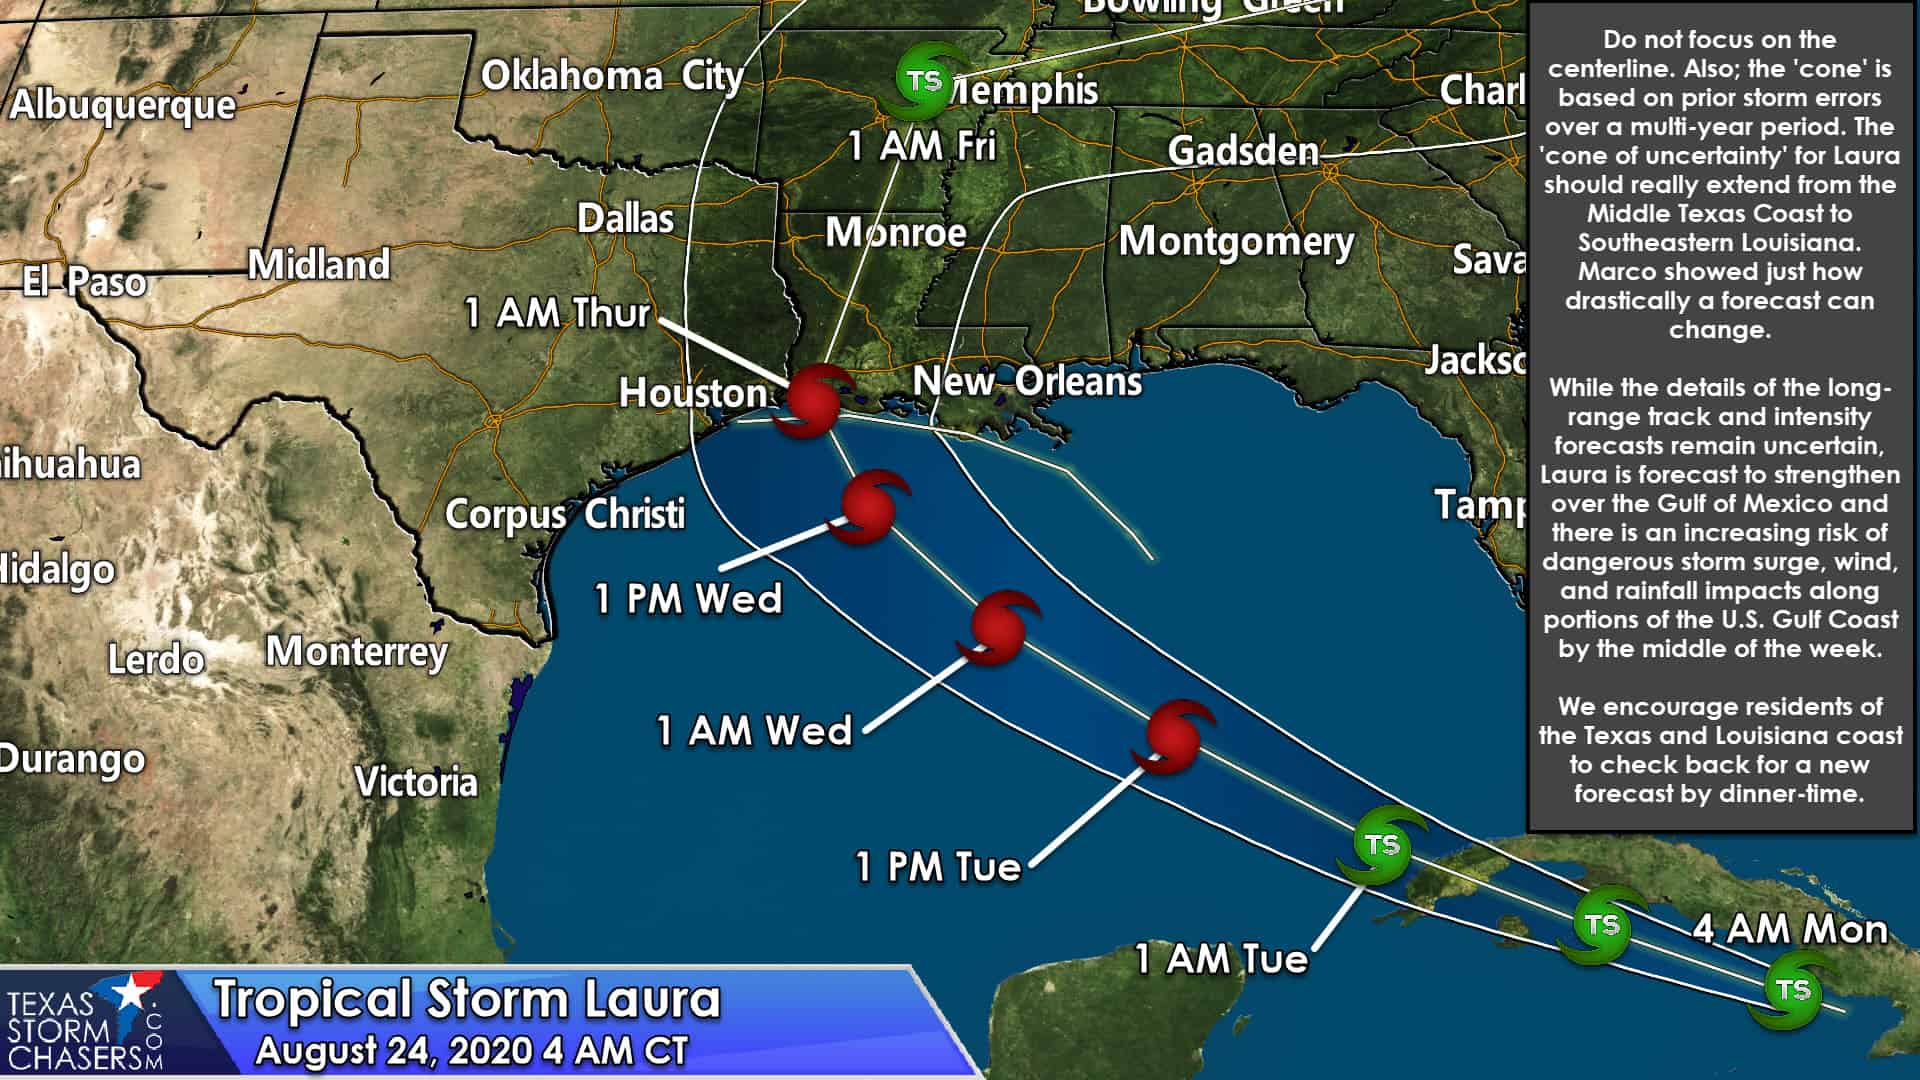 Laura A Potentially Strong Hurricane Threatening The Upper Texas Coast Louisiana By Wednesday Night Texas Storm Chasers